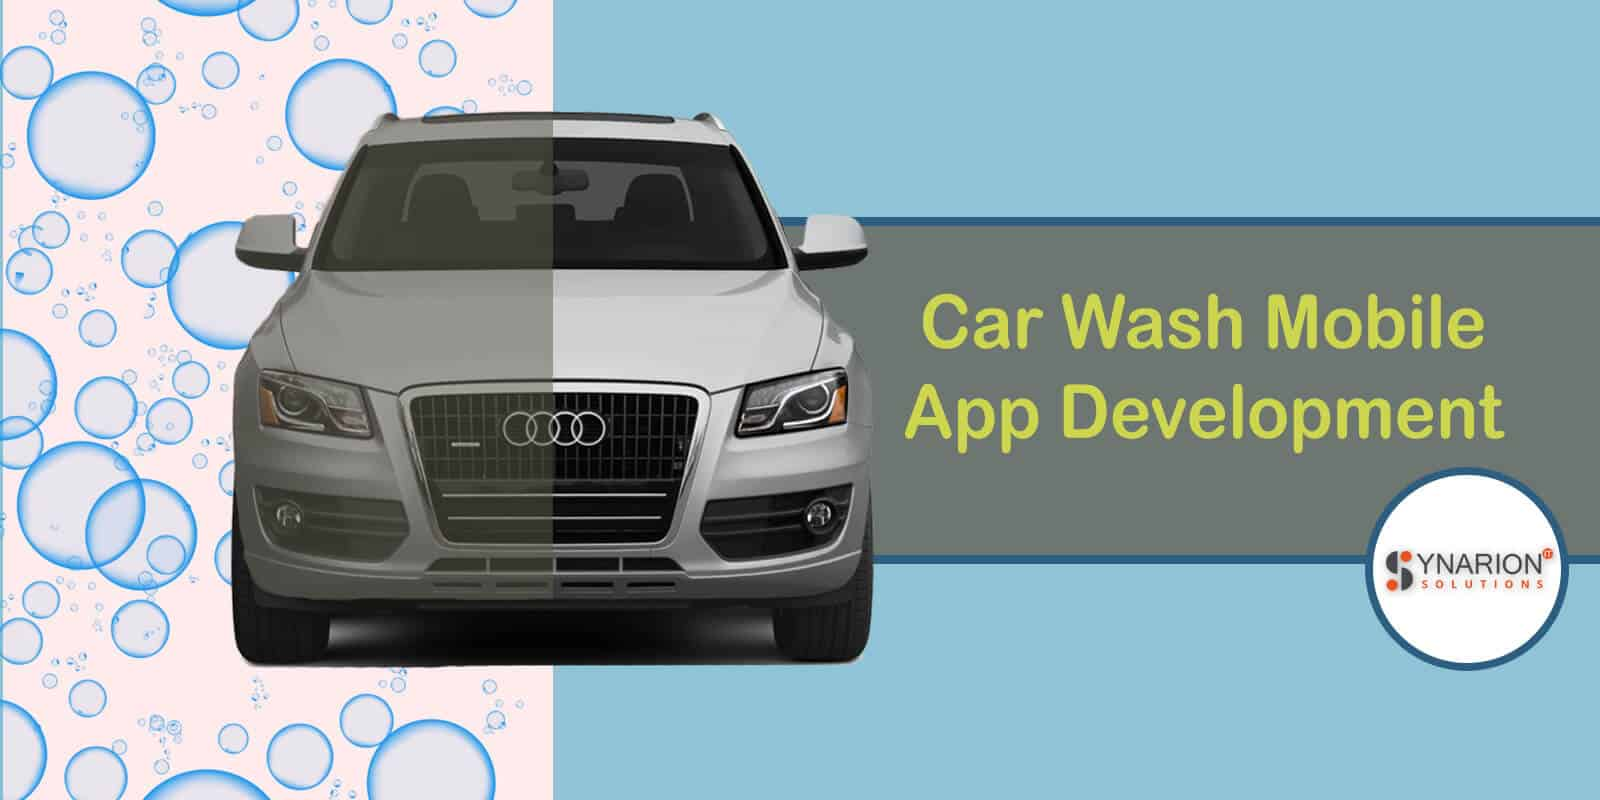 Car wash mobile app development